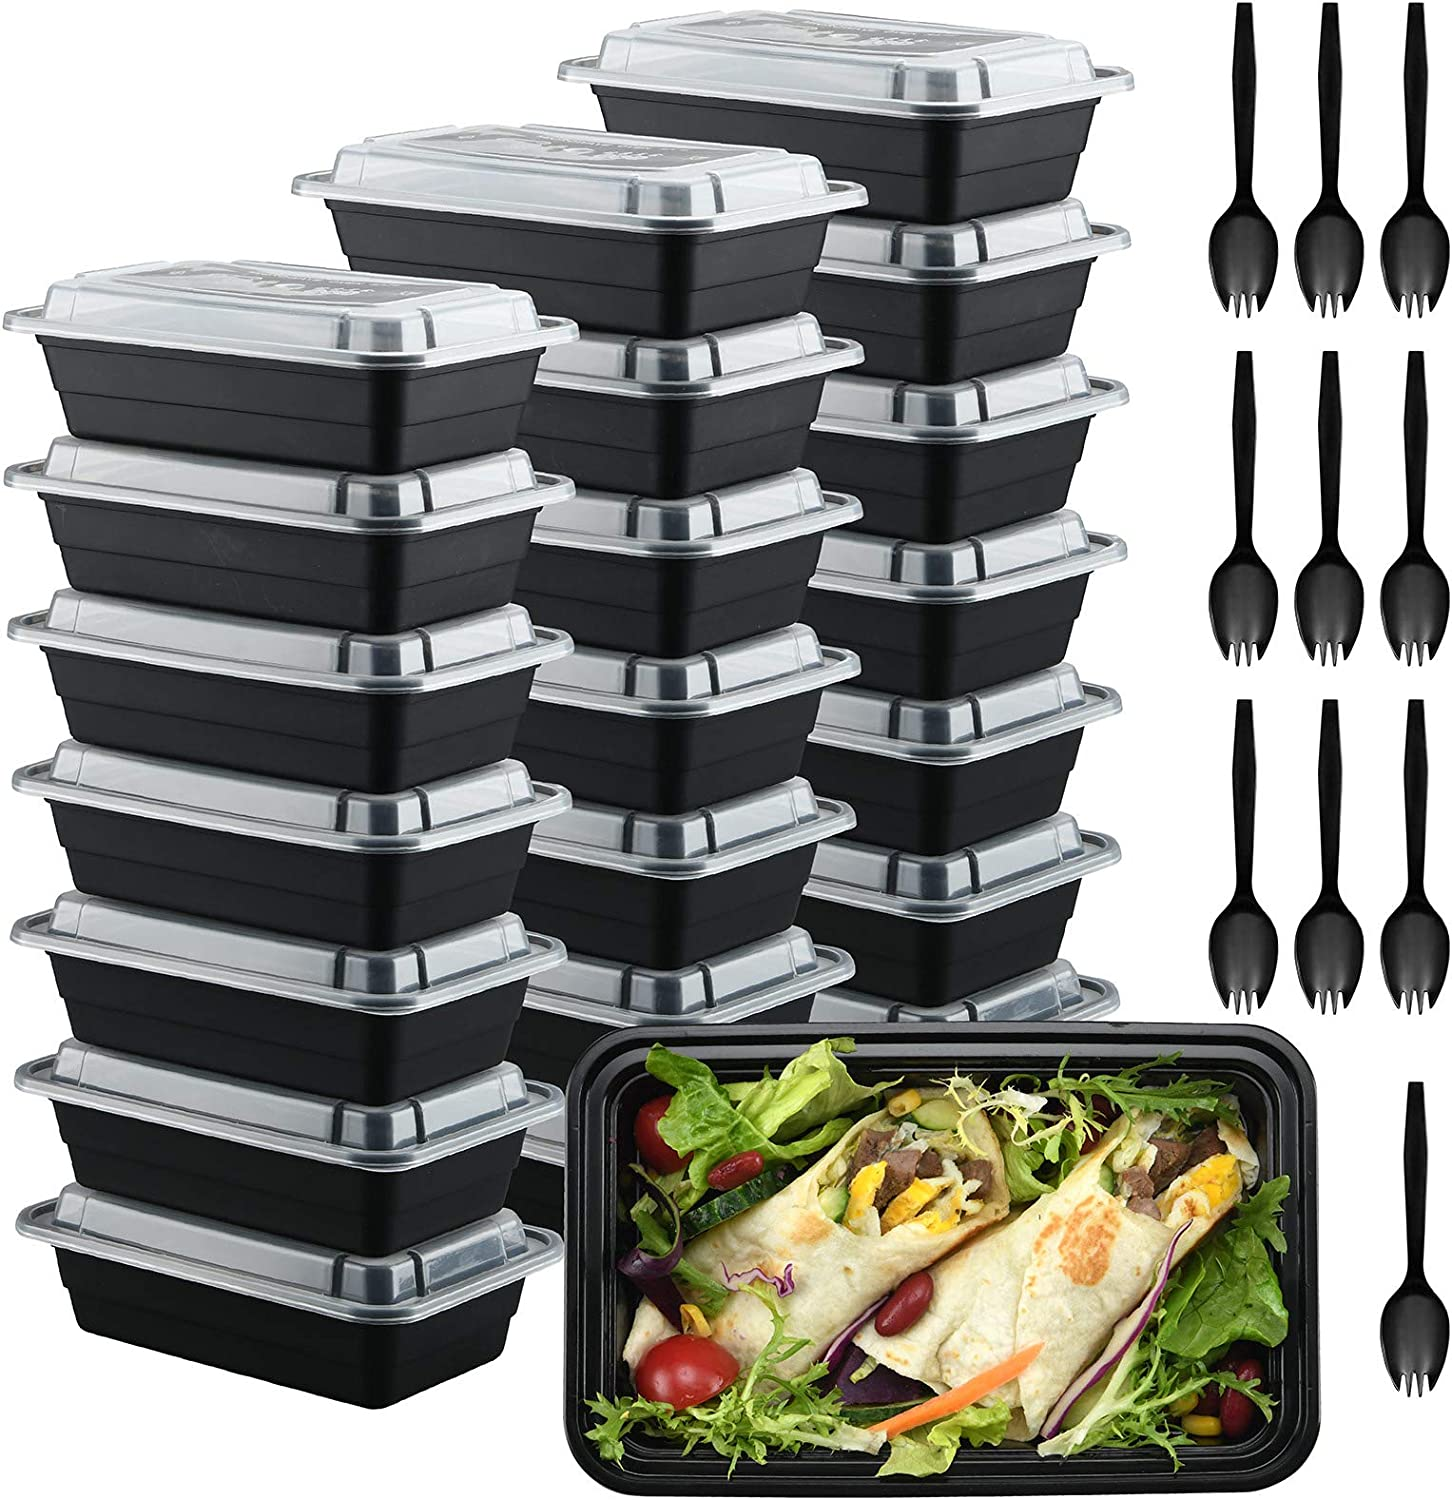 30 Pack Meal Prep Containers 28oz, Food Storage Containers with Lids Airtight, Disposable Food Container, Freezer Safe Food Box, Bento Box, Lunch Box, Reusable Deli Take outs Containers